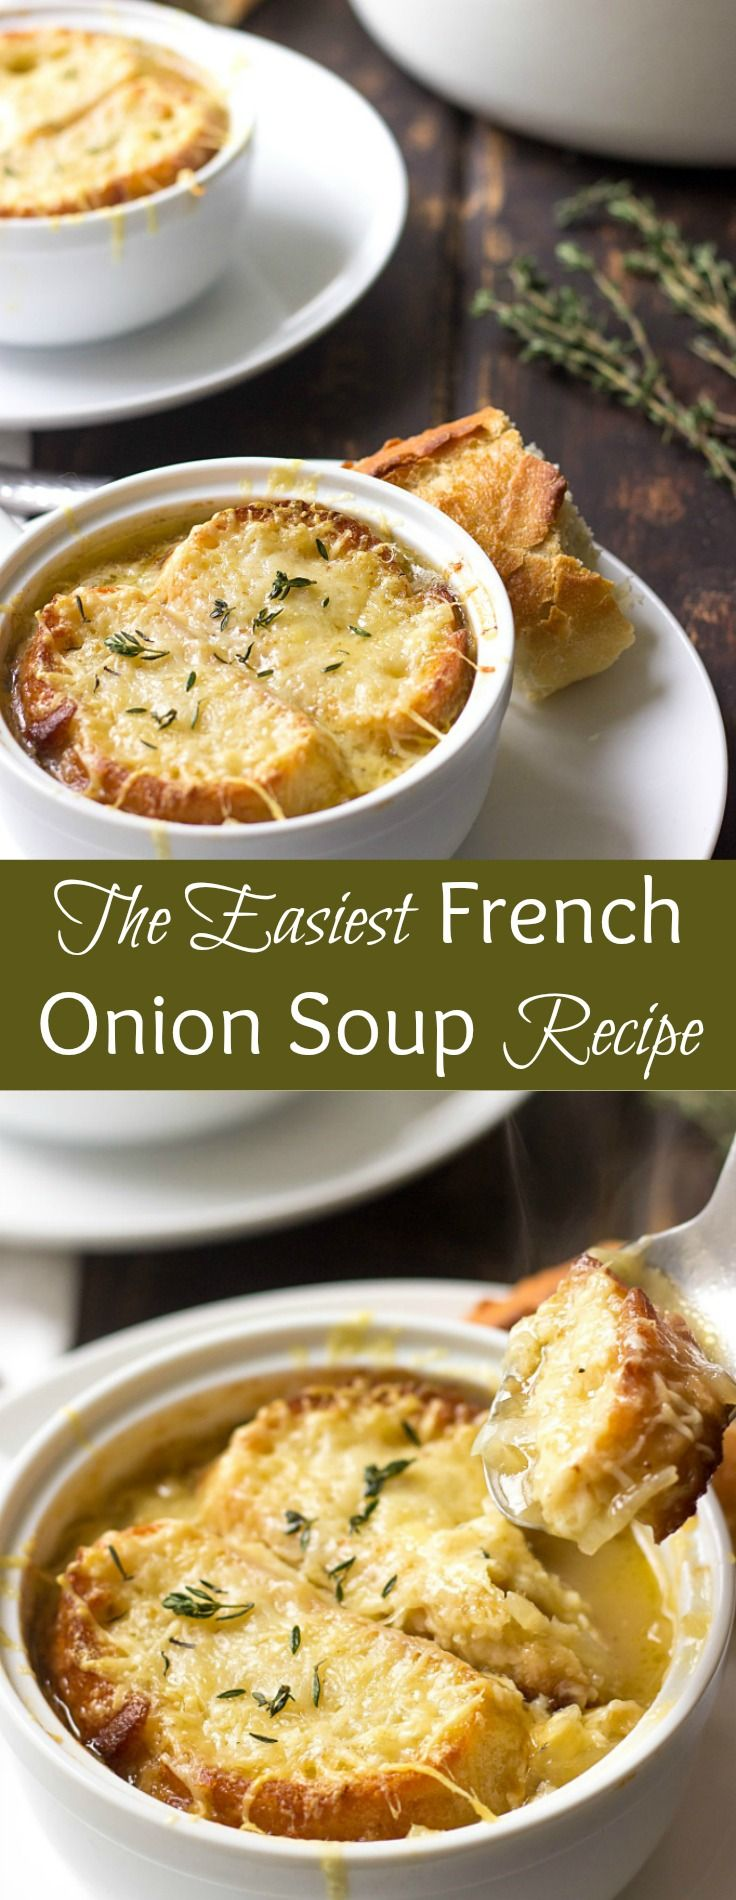 My take on the Easy French Onion Soup will make you believe that sophisticated cuisine doesn't have to be a rocket science.